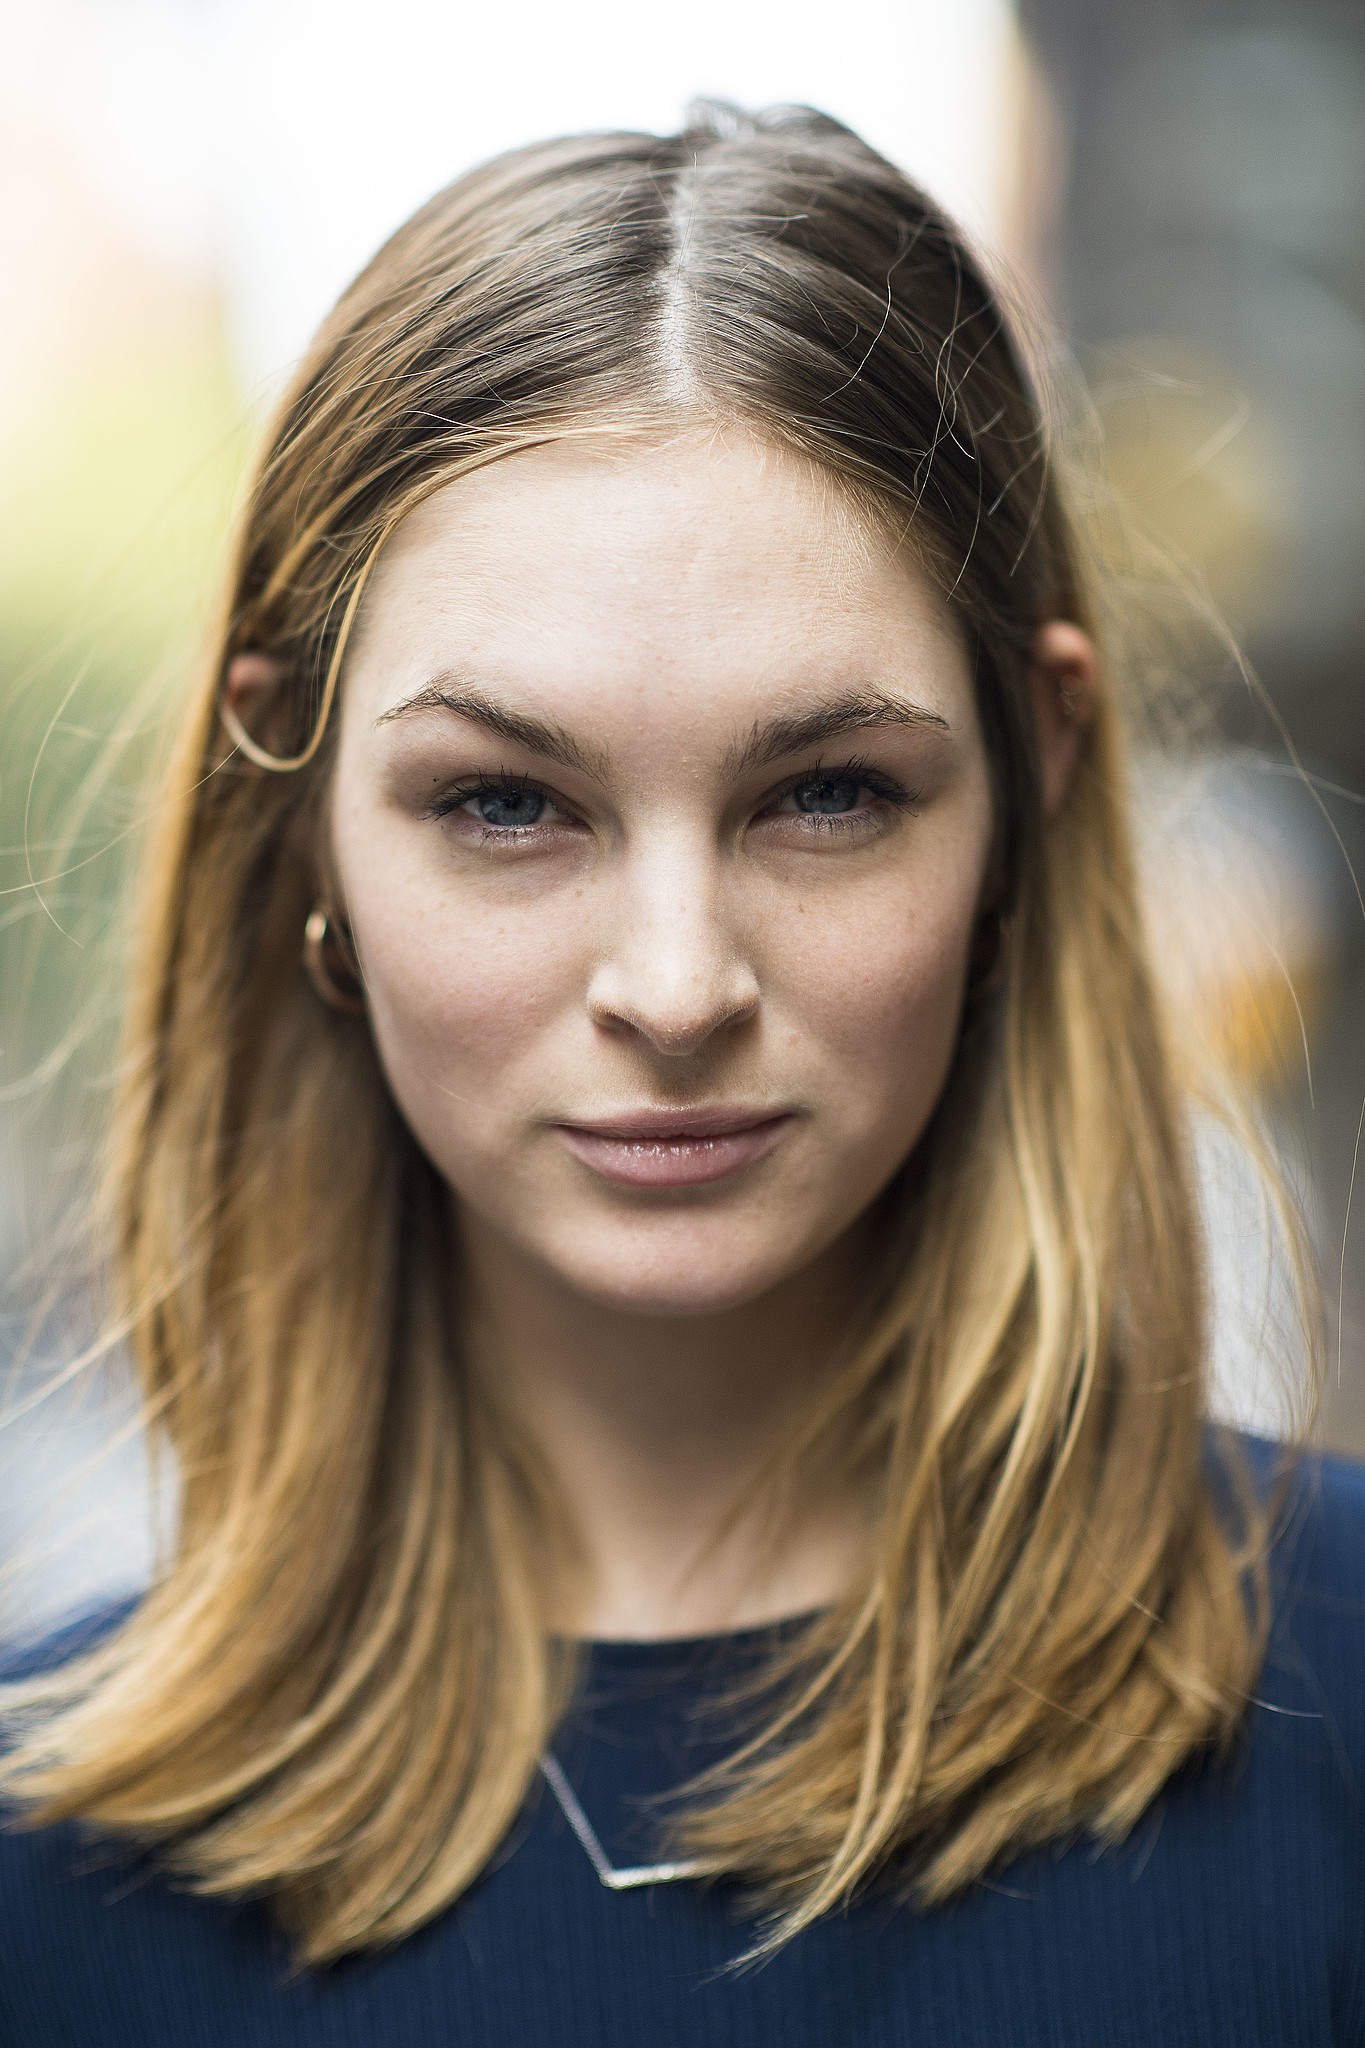 Model Laura Love showed off gorgeous blond locks and a neutral makeup look.  Source: Le 21ème | Adam Katz Sinding